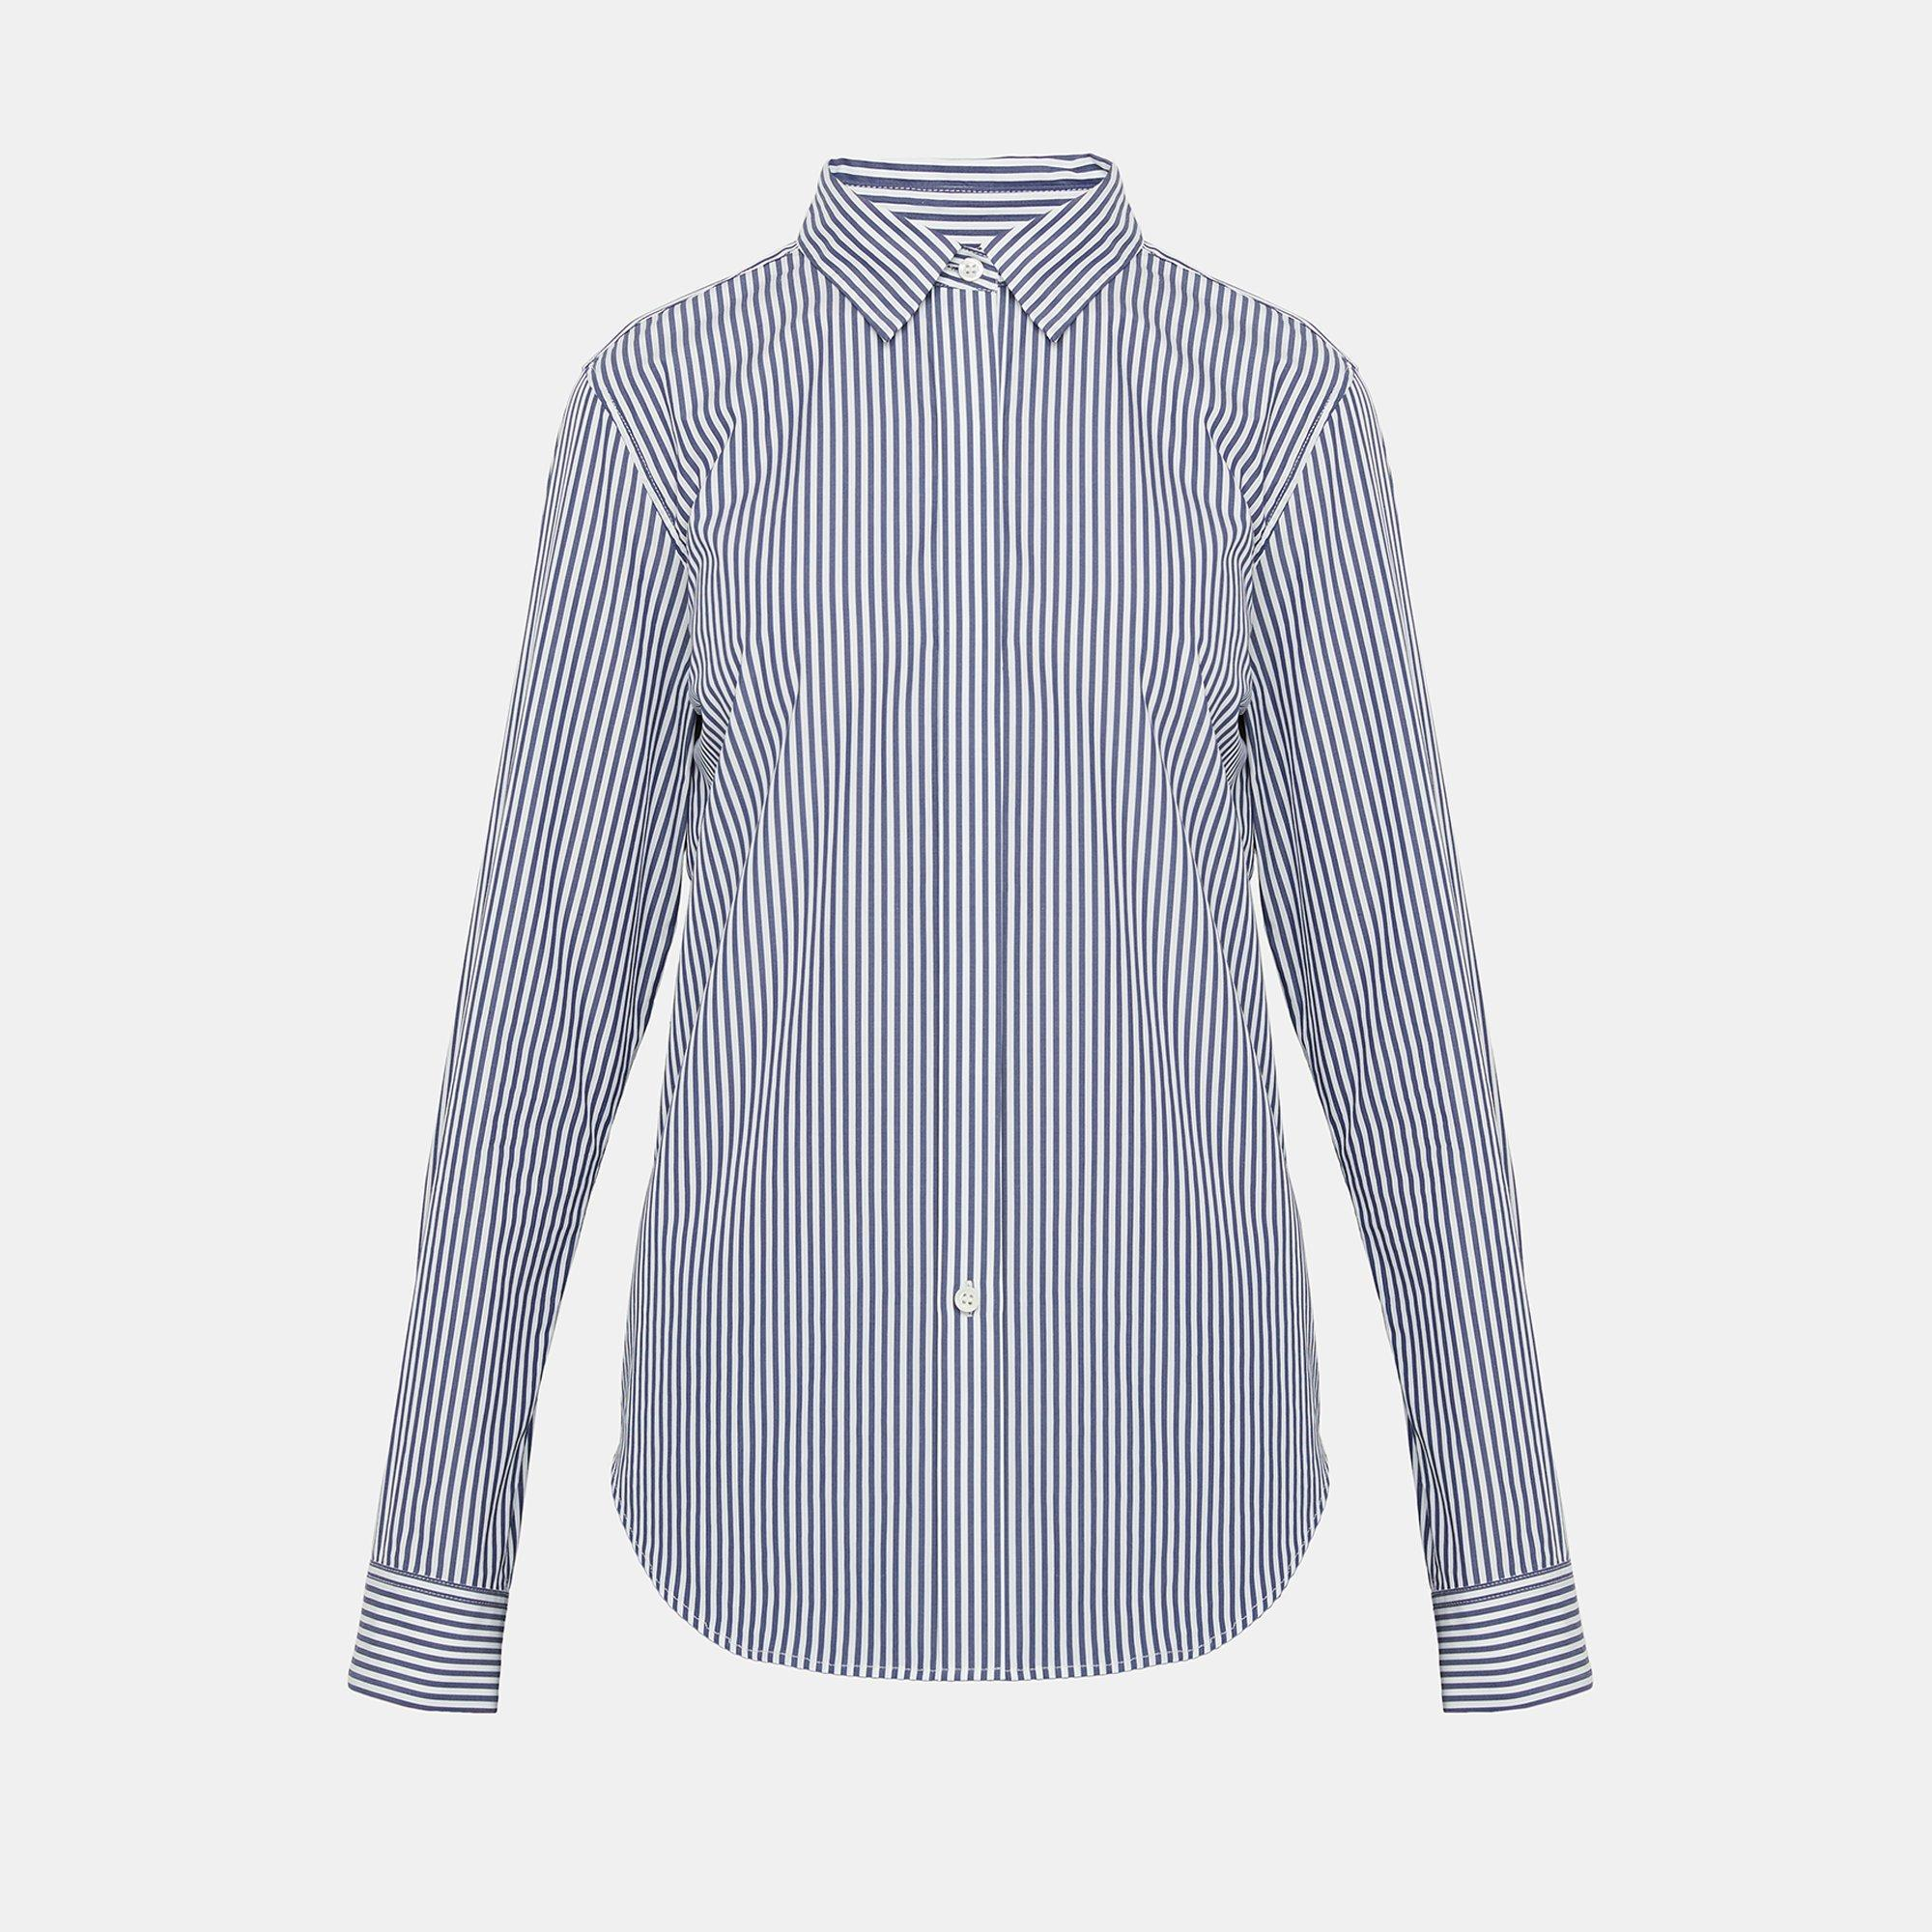 bc8f728ef27c3 Lyst - Theory Striped Essential Button-down Shirt in Blue